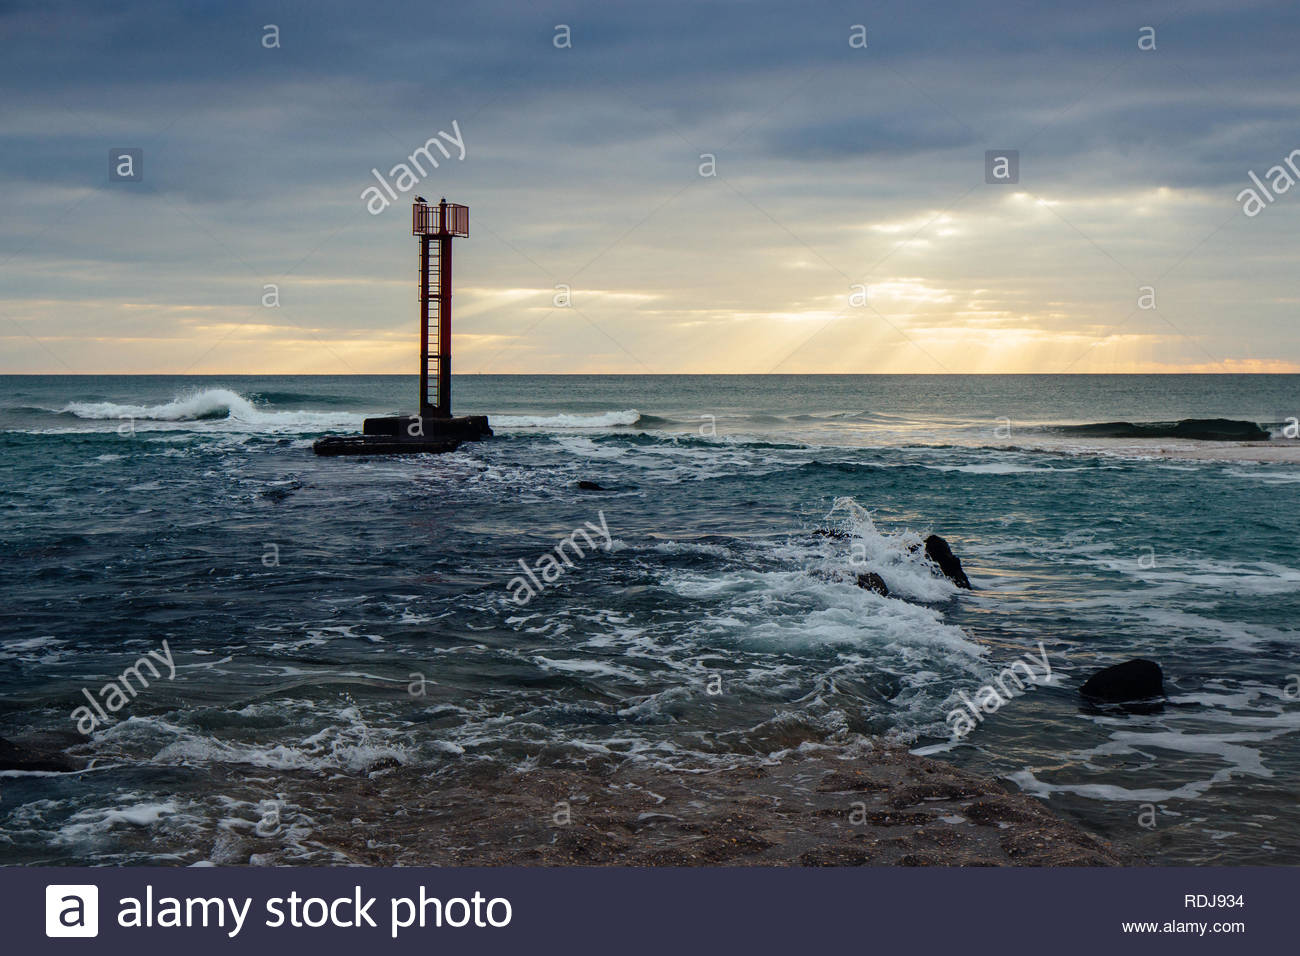 Red semaphore at the end of the Etel river, Brittany, France, during a sunset. - Stock Image